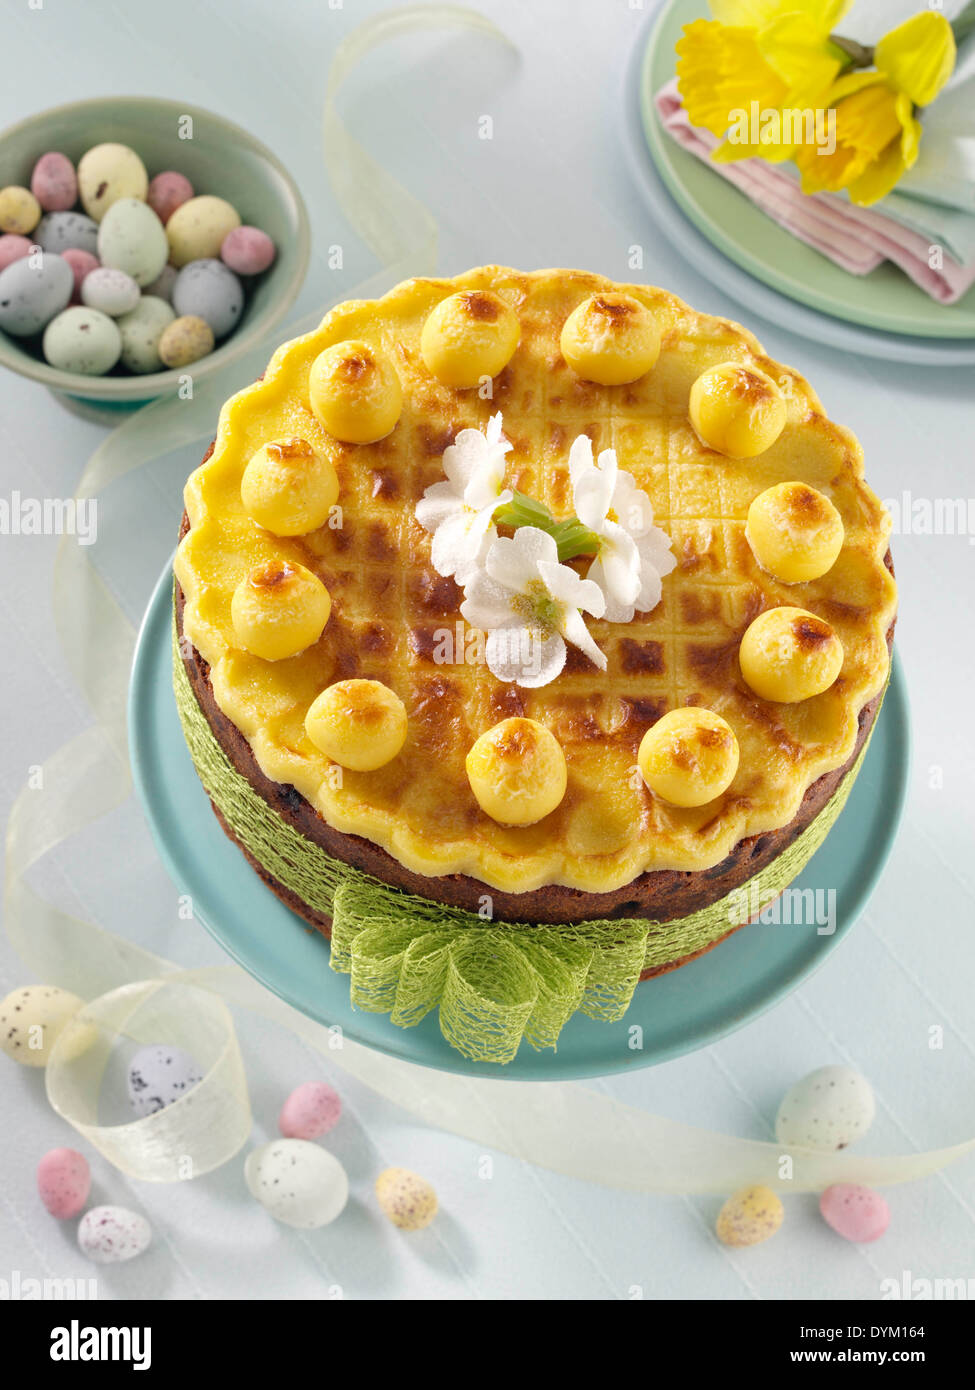 Simnel cake for Easter - Stock Image